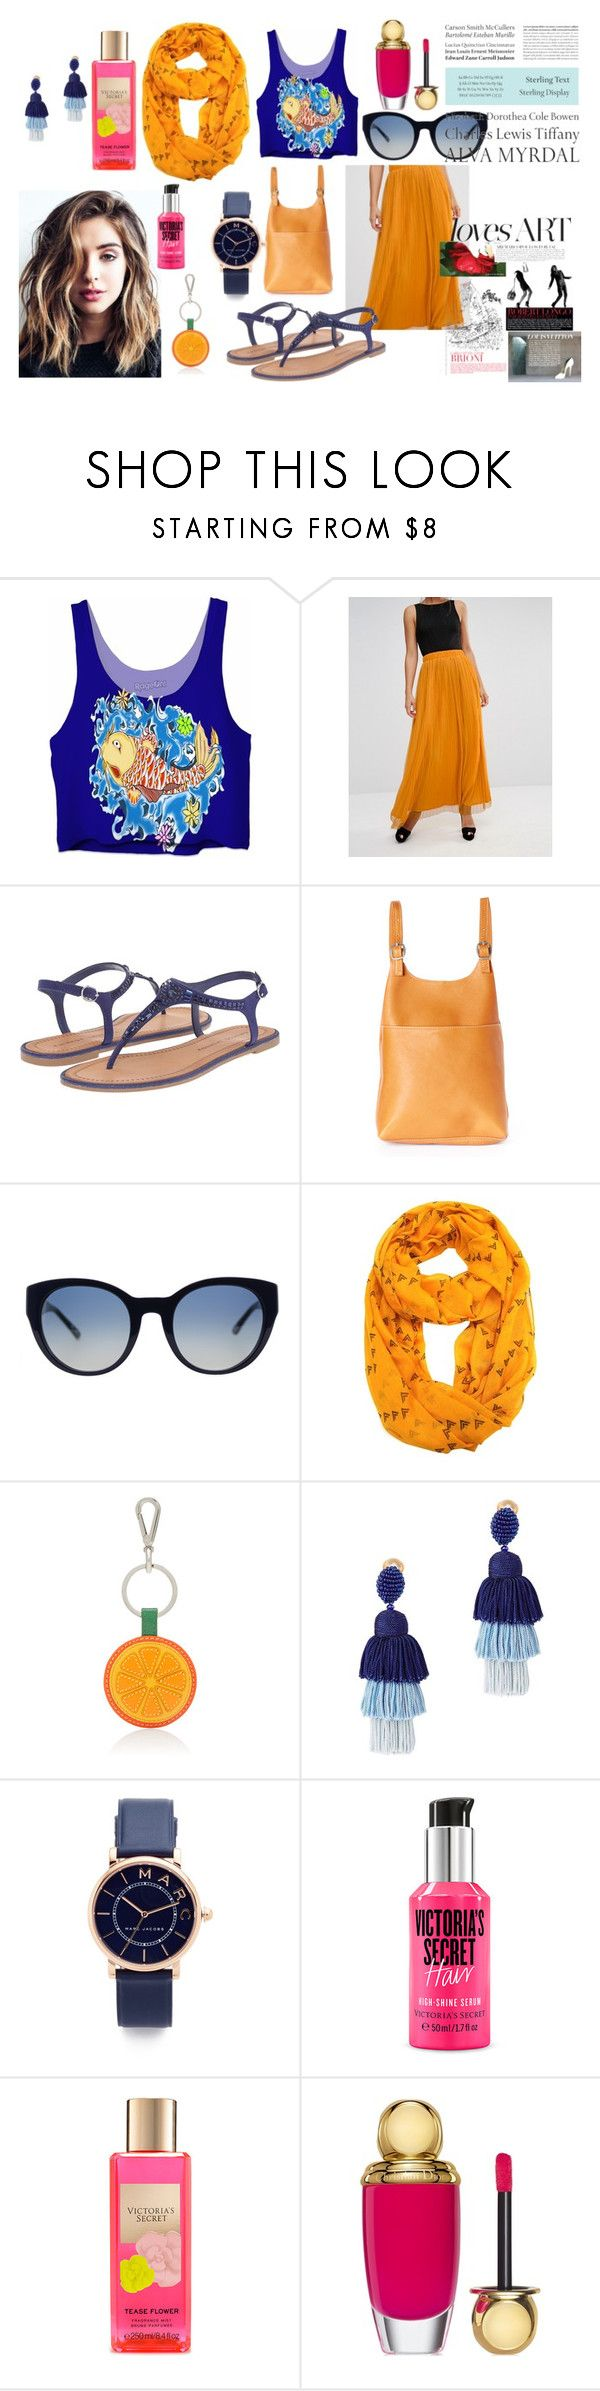 Summer Baby~ by avantika22july on Polyvore featuring J&C Creations, Boohoo, Chinese Laundry, Le Donne, Marc Jacobs, Oscar de la Renta, Le Nom, Tory Burch, Barneys New York, Christian Dior and Victoria's Secret